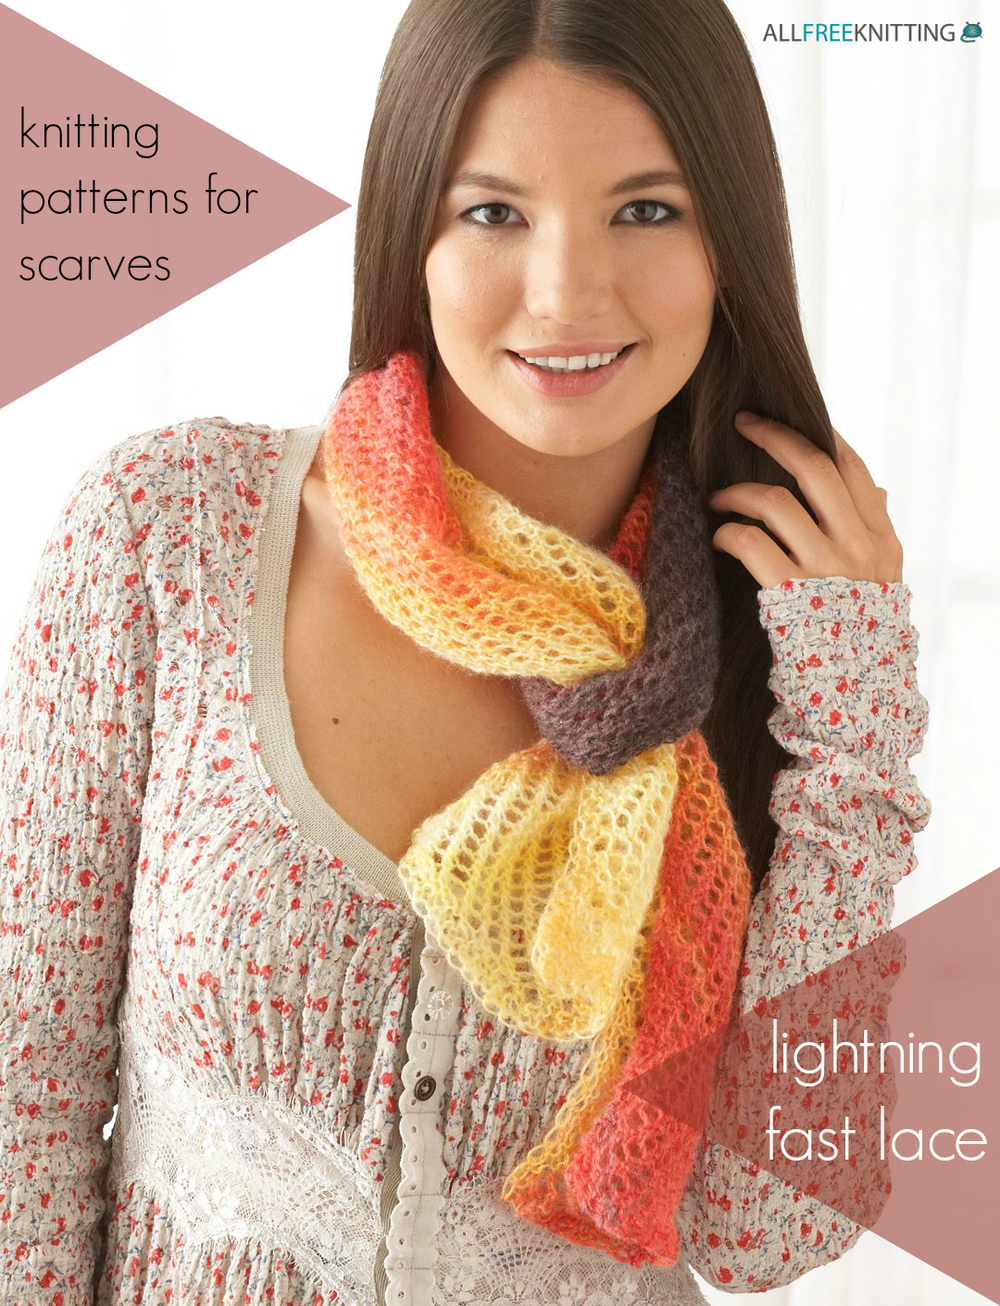 Fast Knit Scarf Pattern : 33+ Knitting Patterns for Scarves: Lightning Fast Lace AllFreeKnitting.com